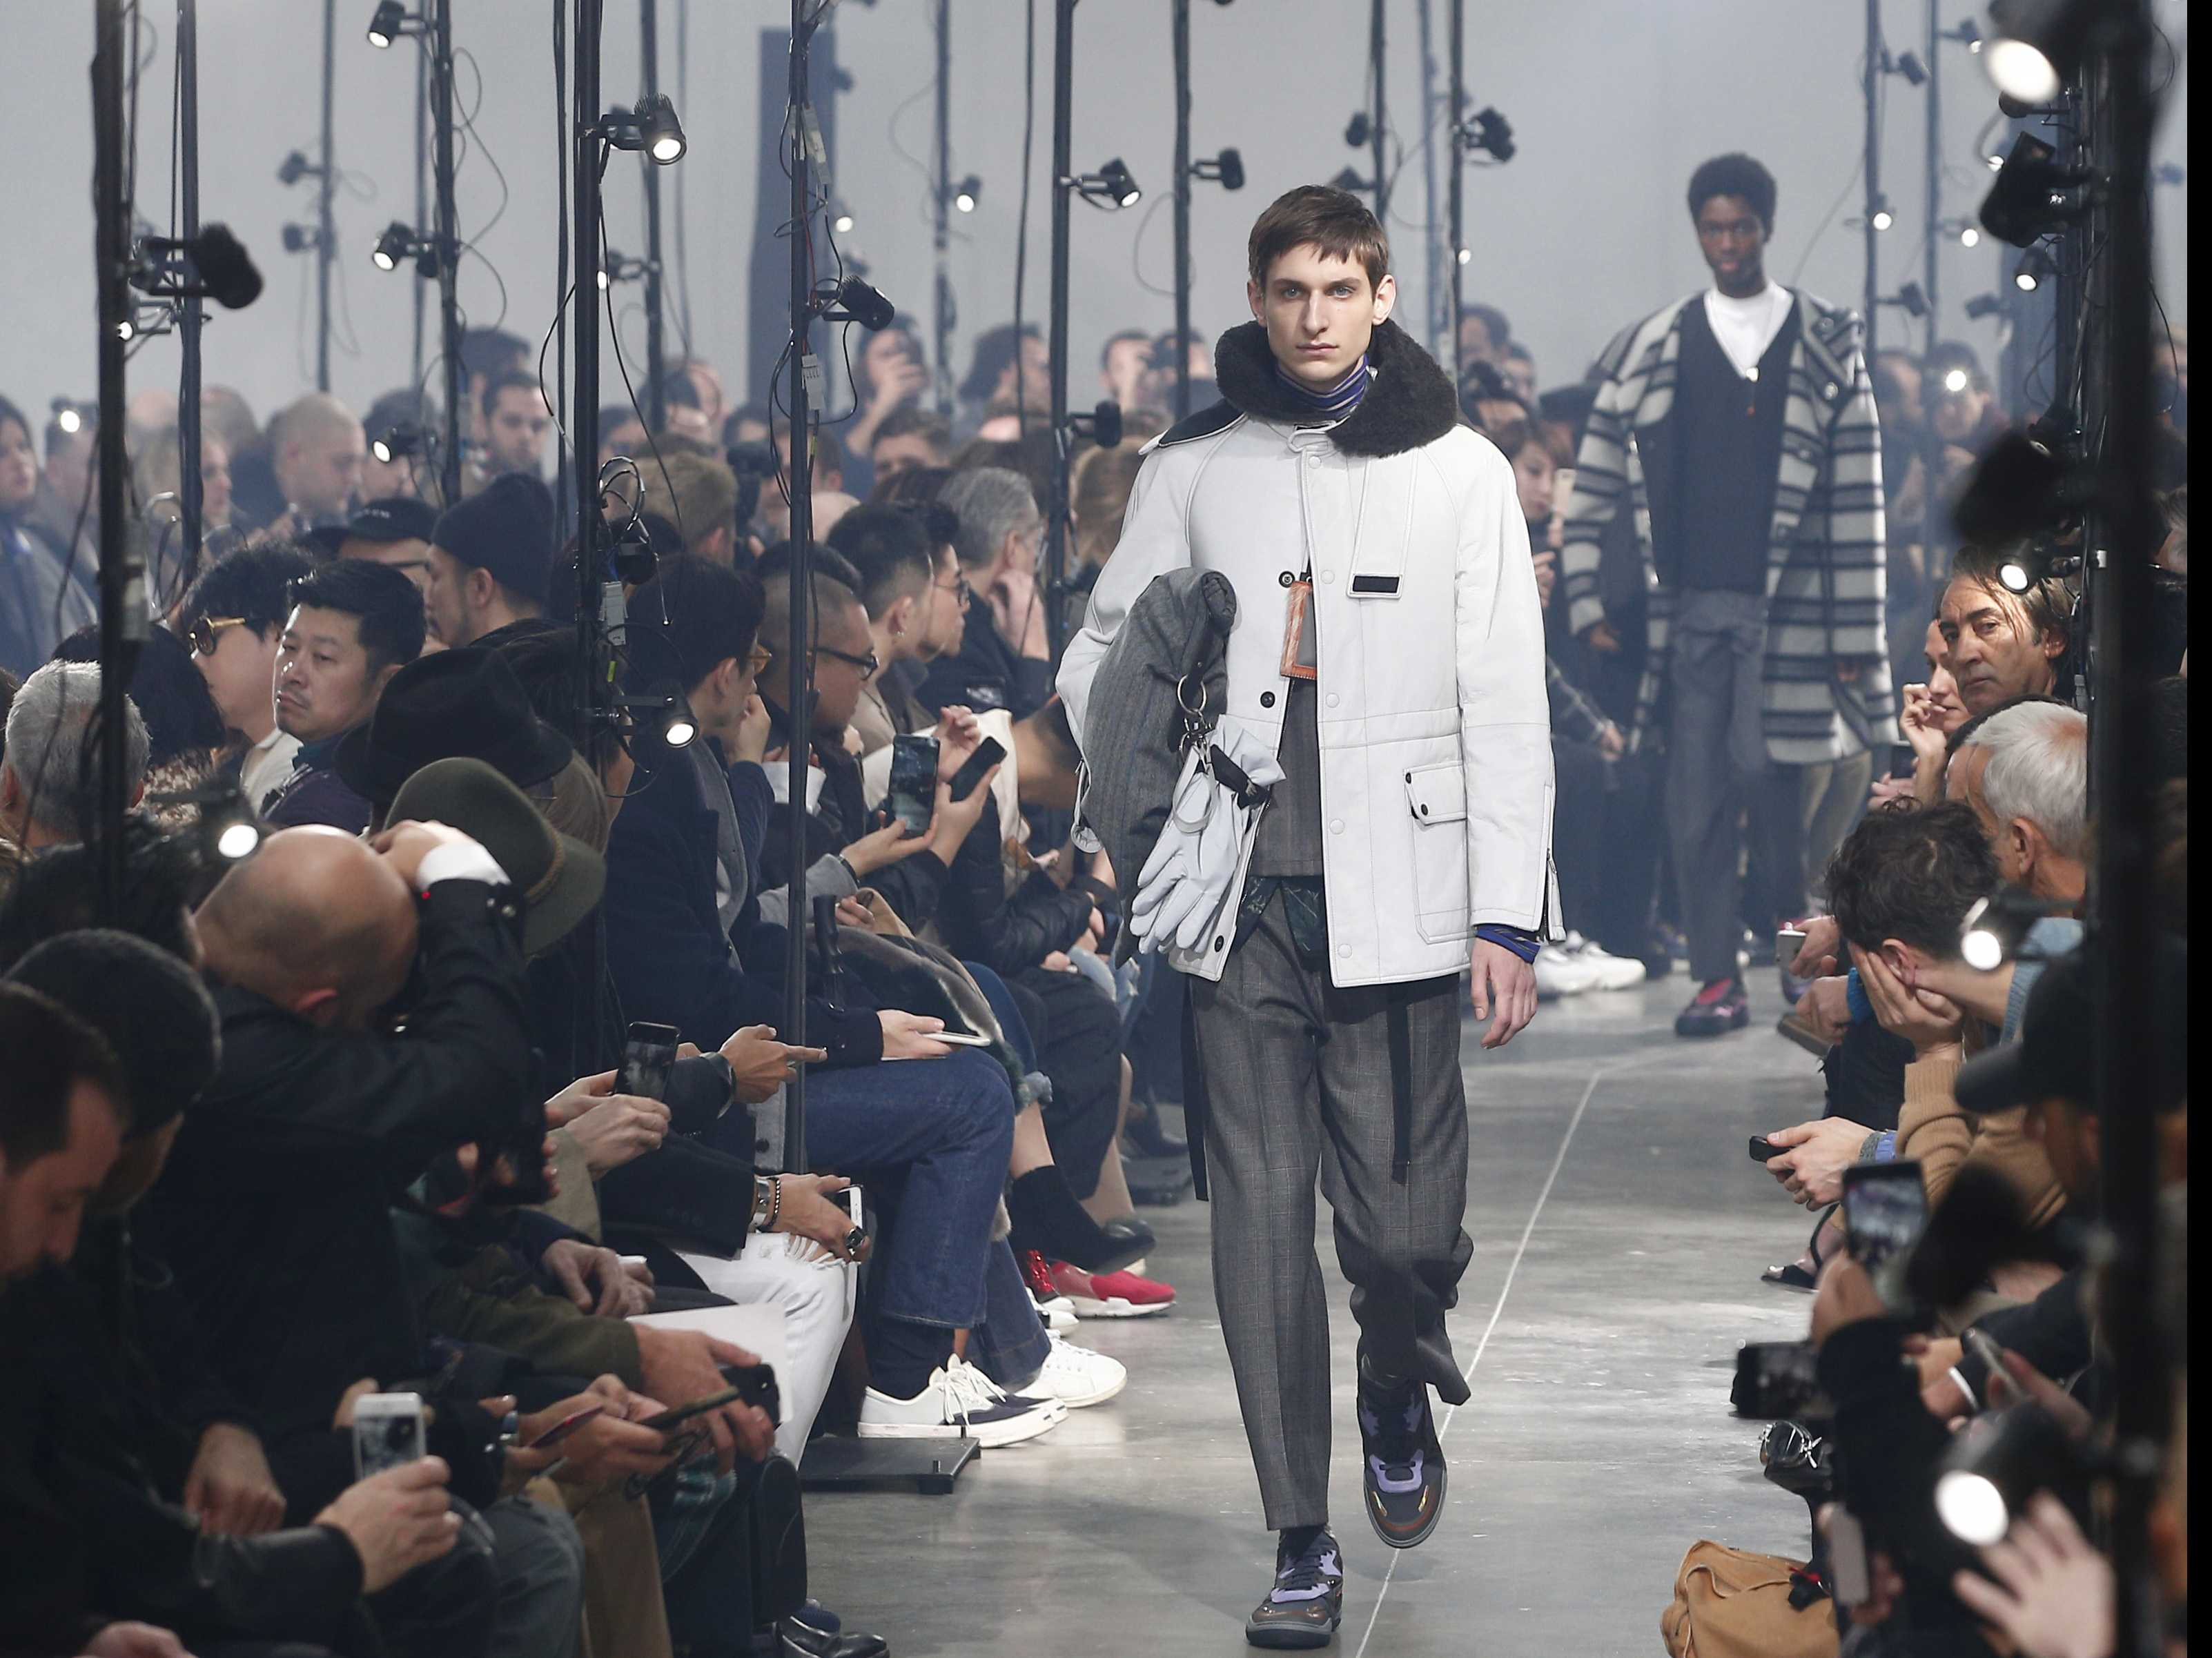 Paris Fashion Week Finale: Lanvin, Kenzo & More